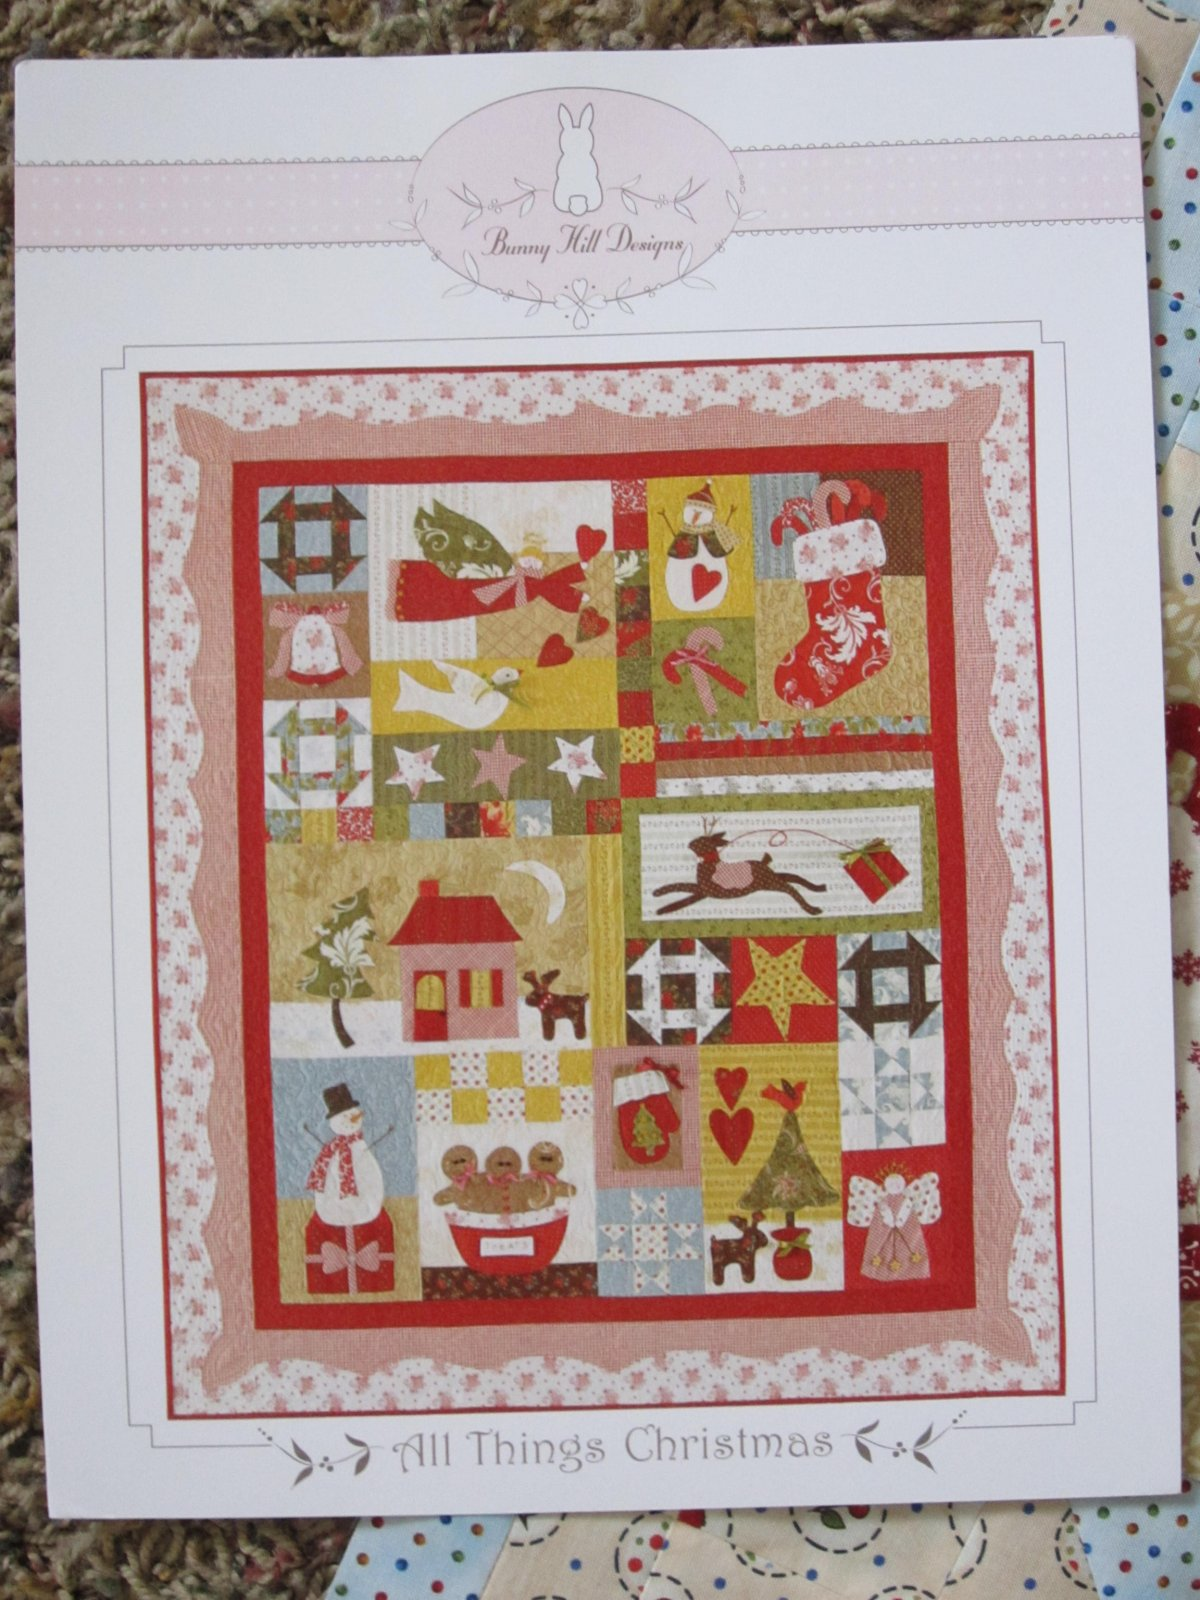 All Things Christmas pattern